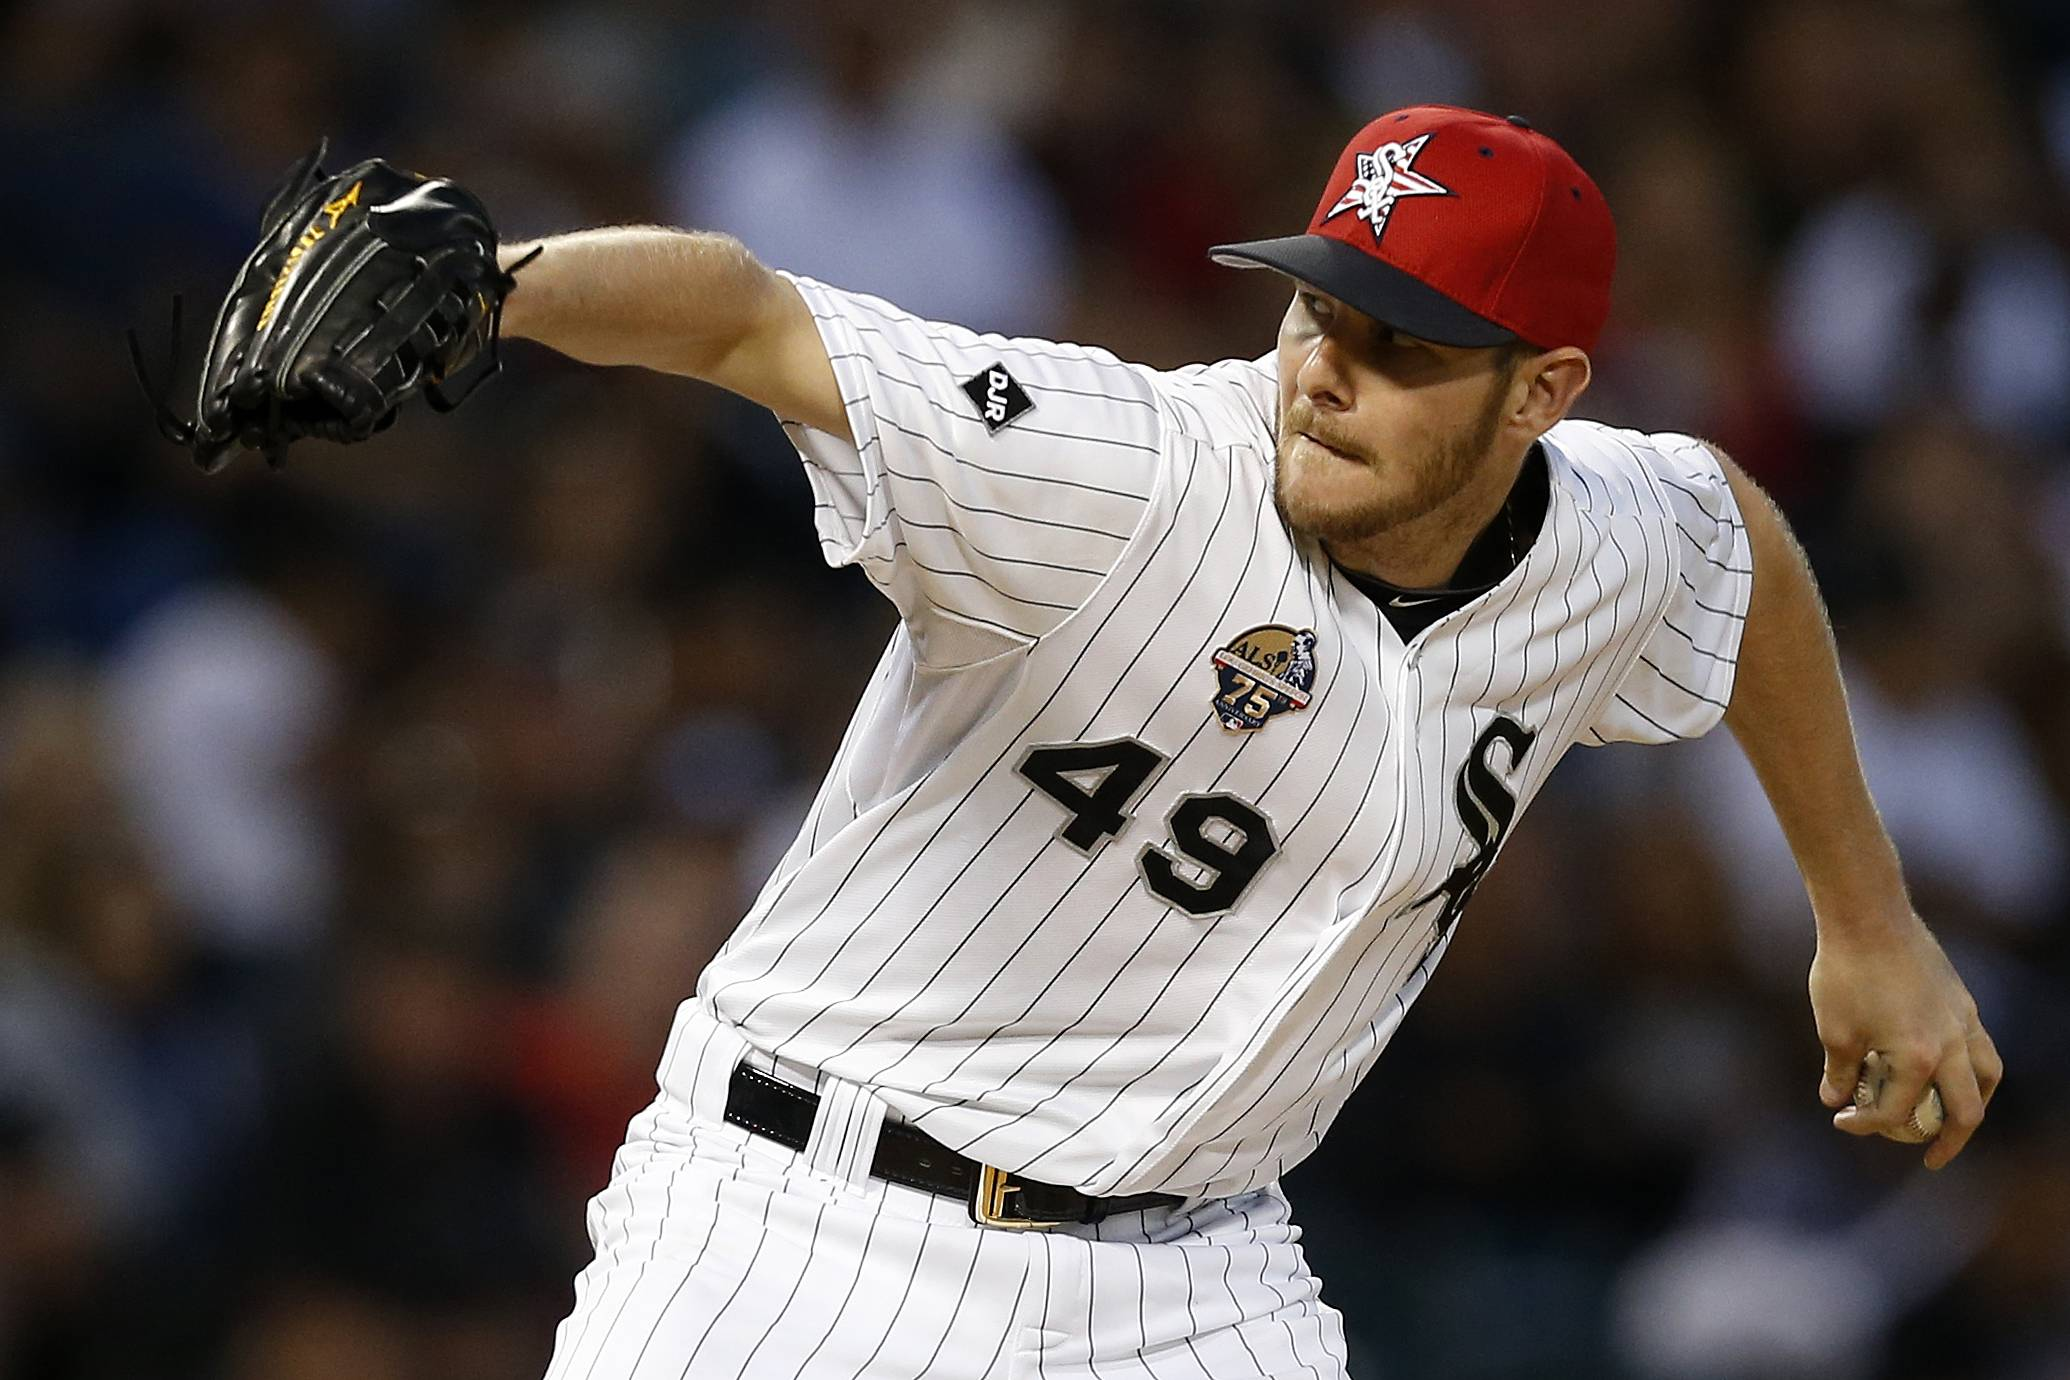 White Sox starting pitcher Chris Sale needs the support of fans to make the all-star team via the Final Vote. He is 8-1 with a 2.16 ERA.